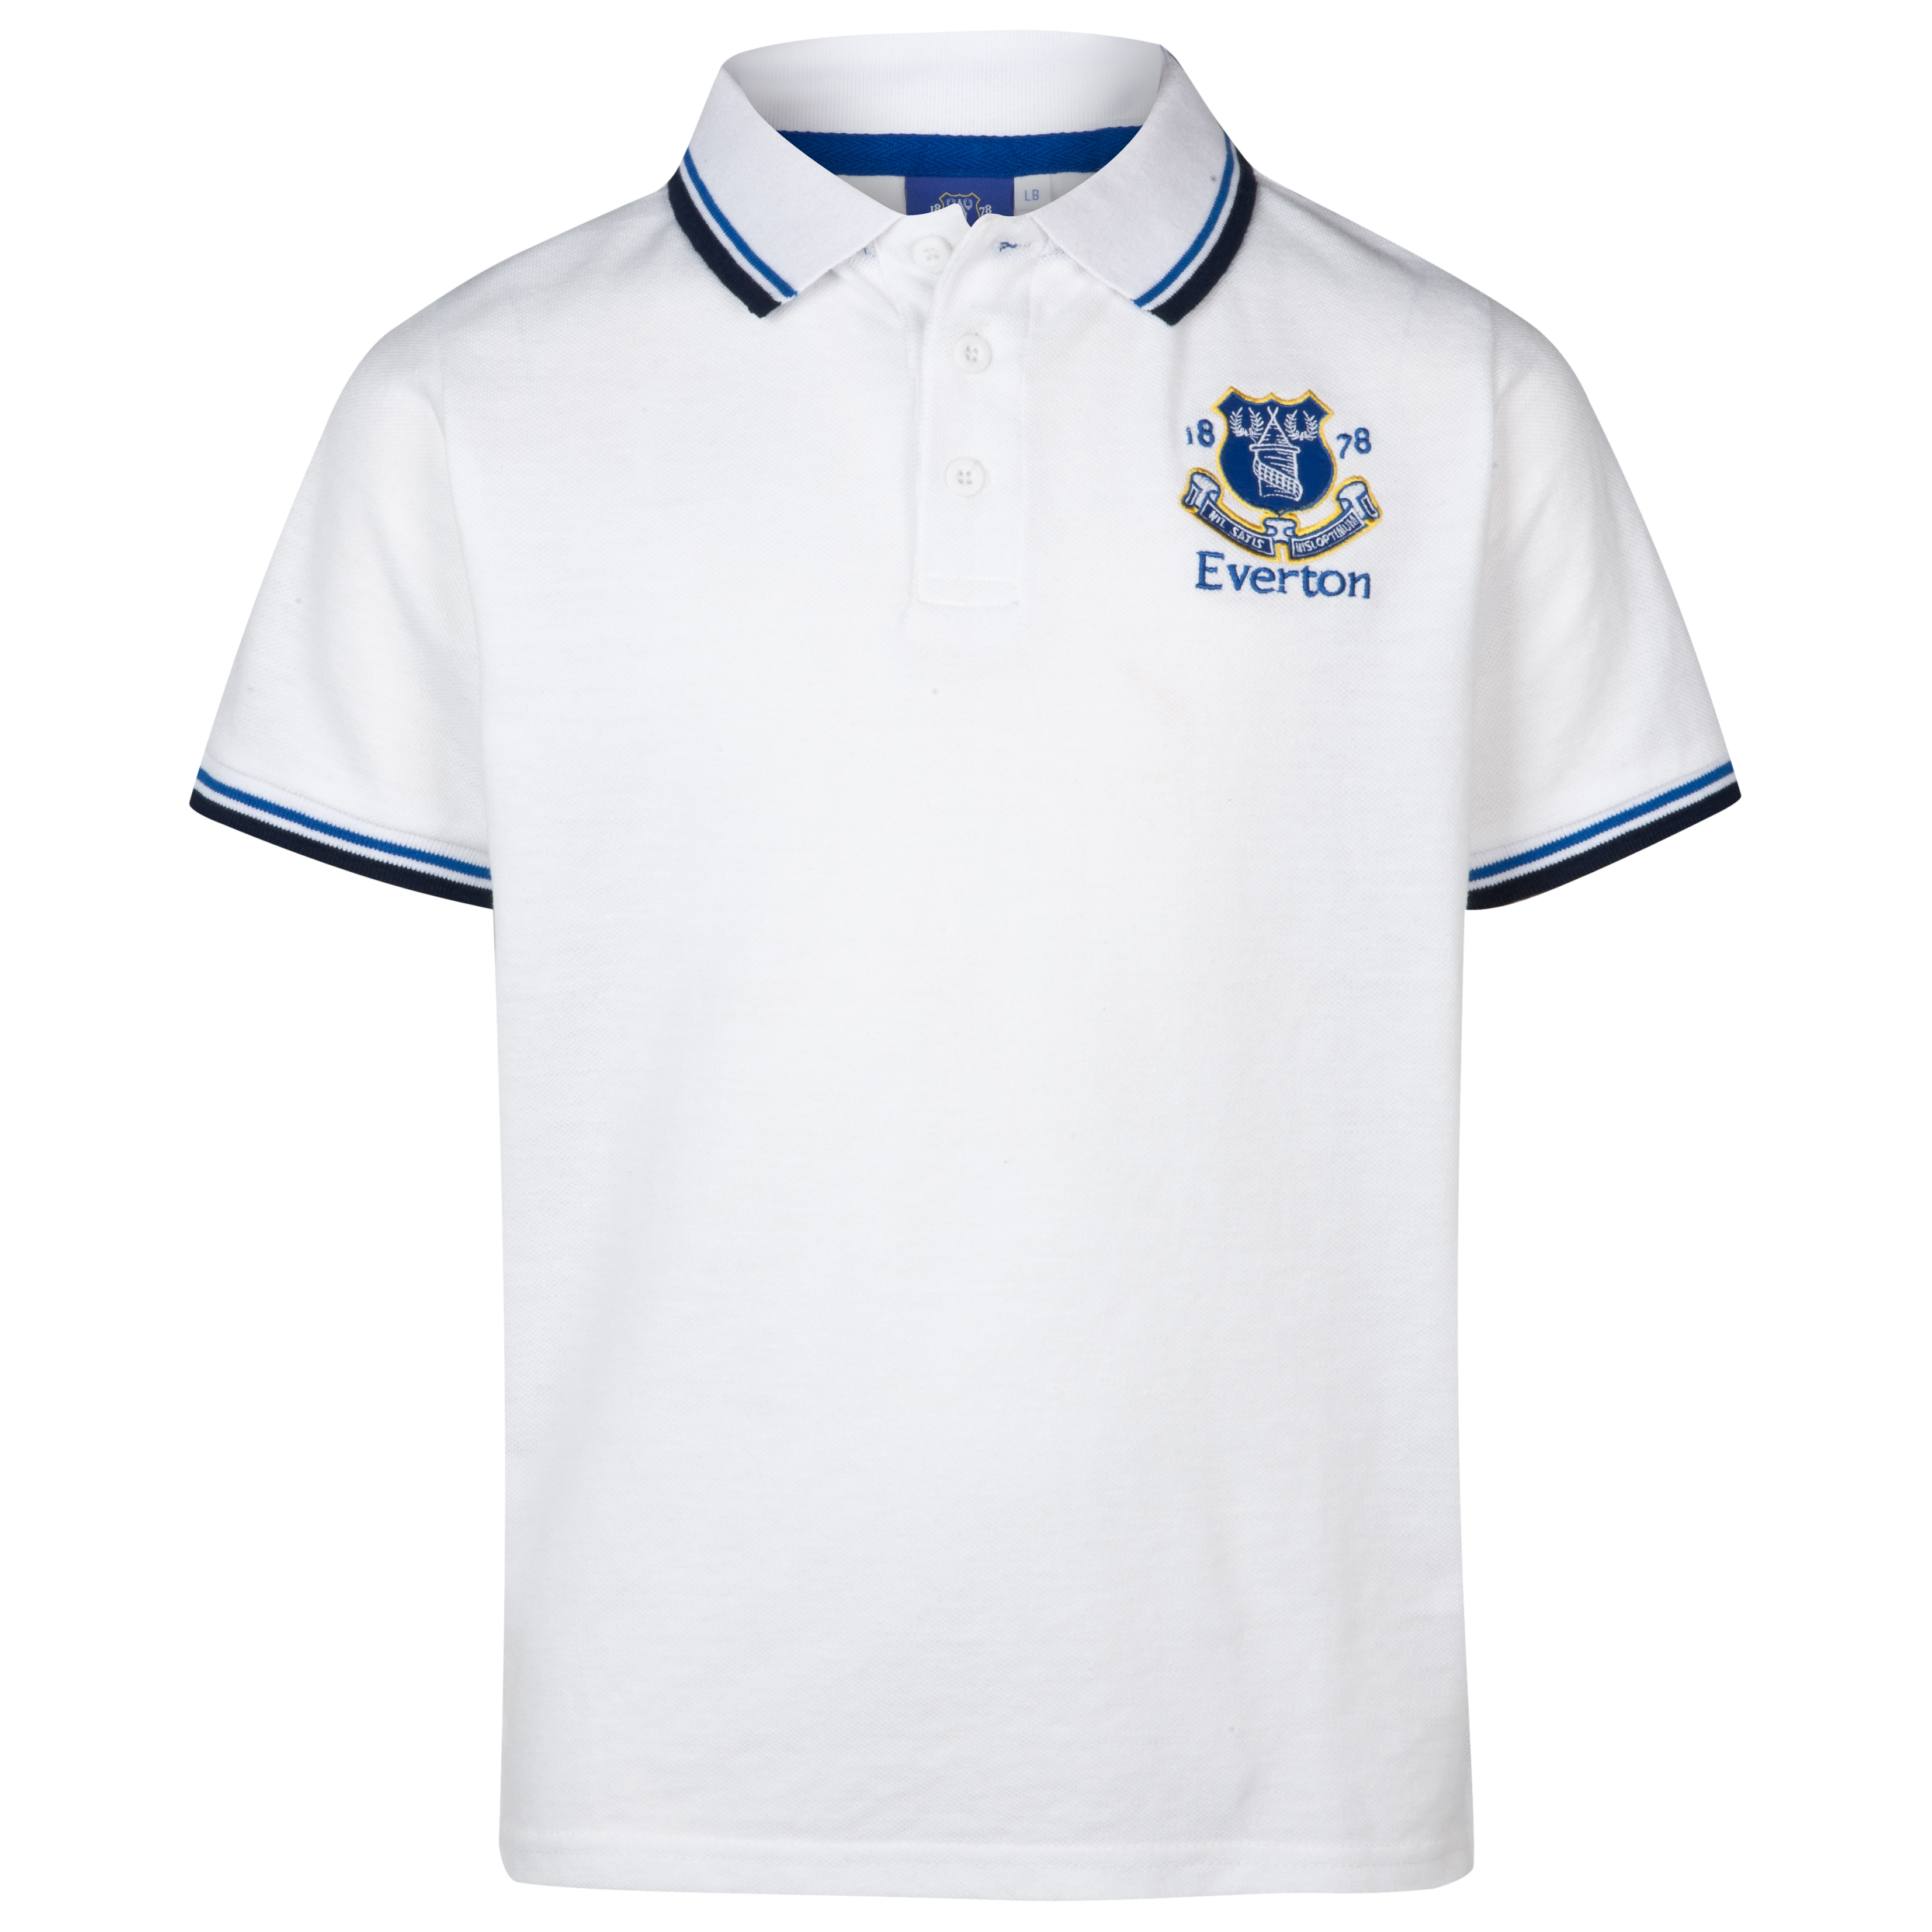 Everton Essentials Park Polo Top - White - Infant Boys